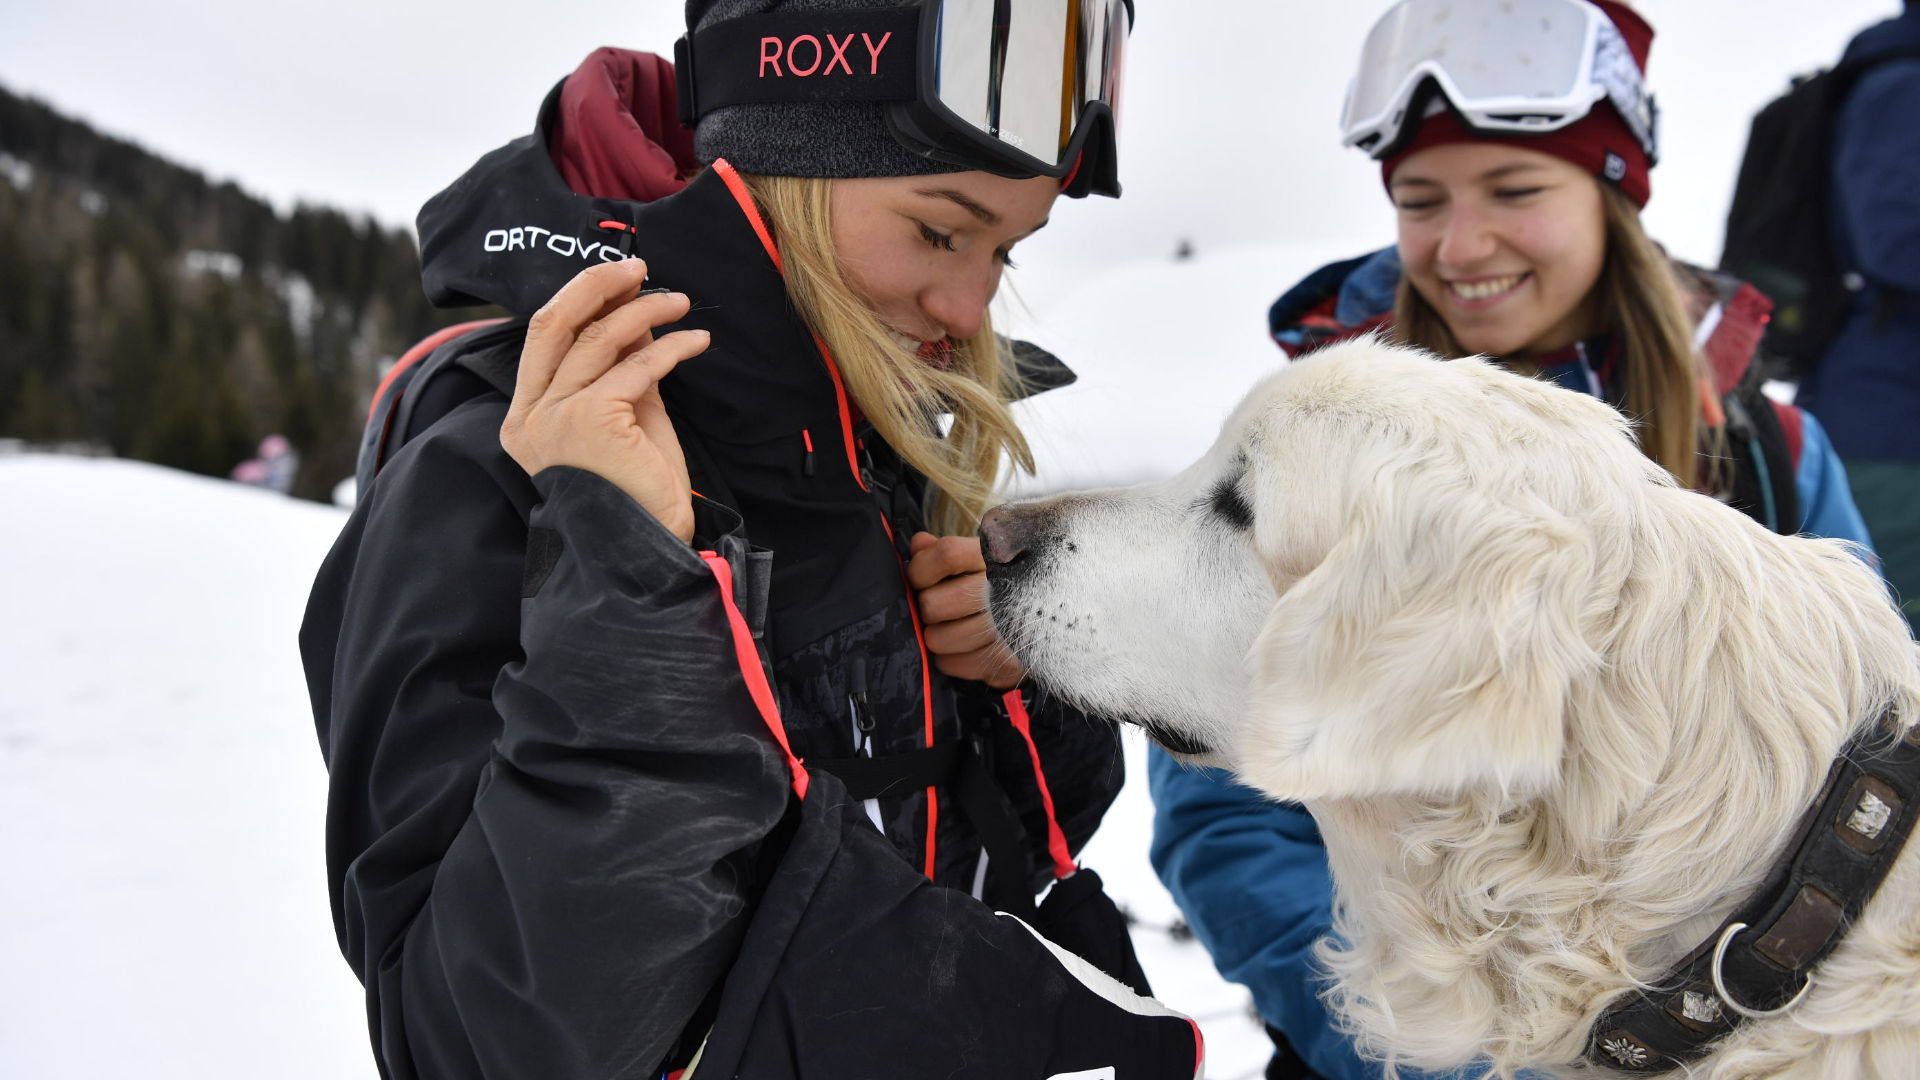 A female rider in a snowboard jacket playing with a dog